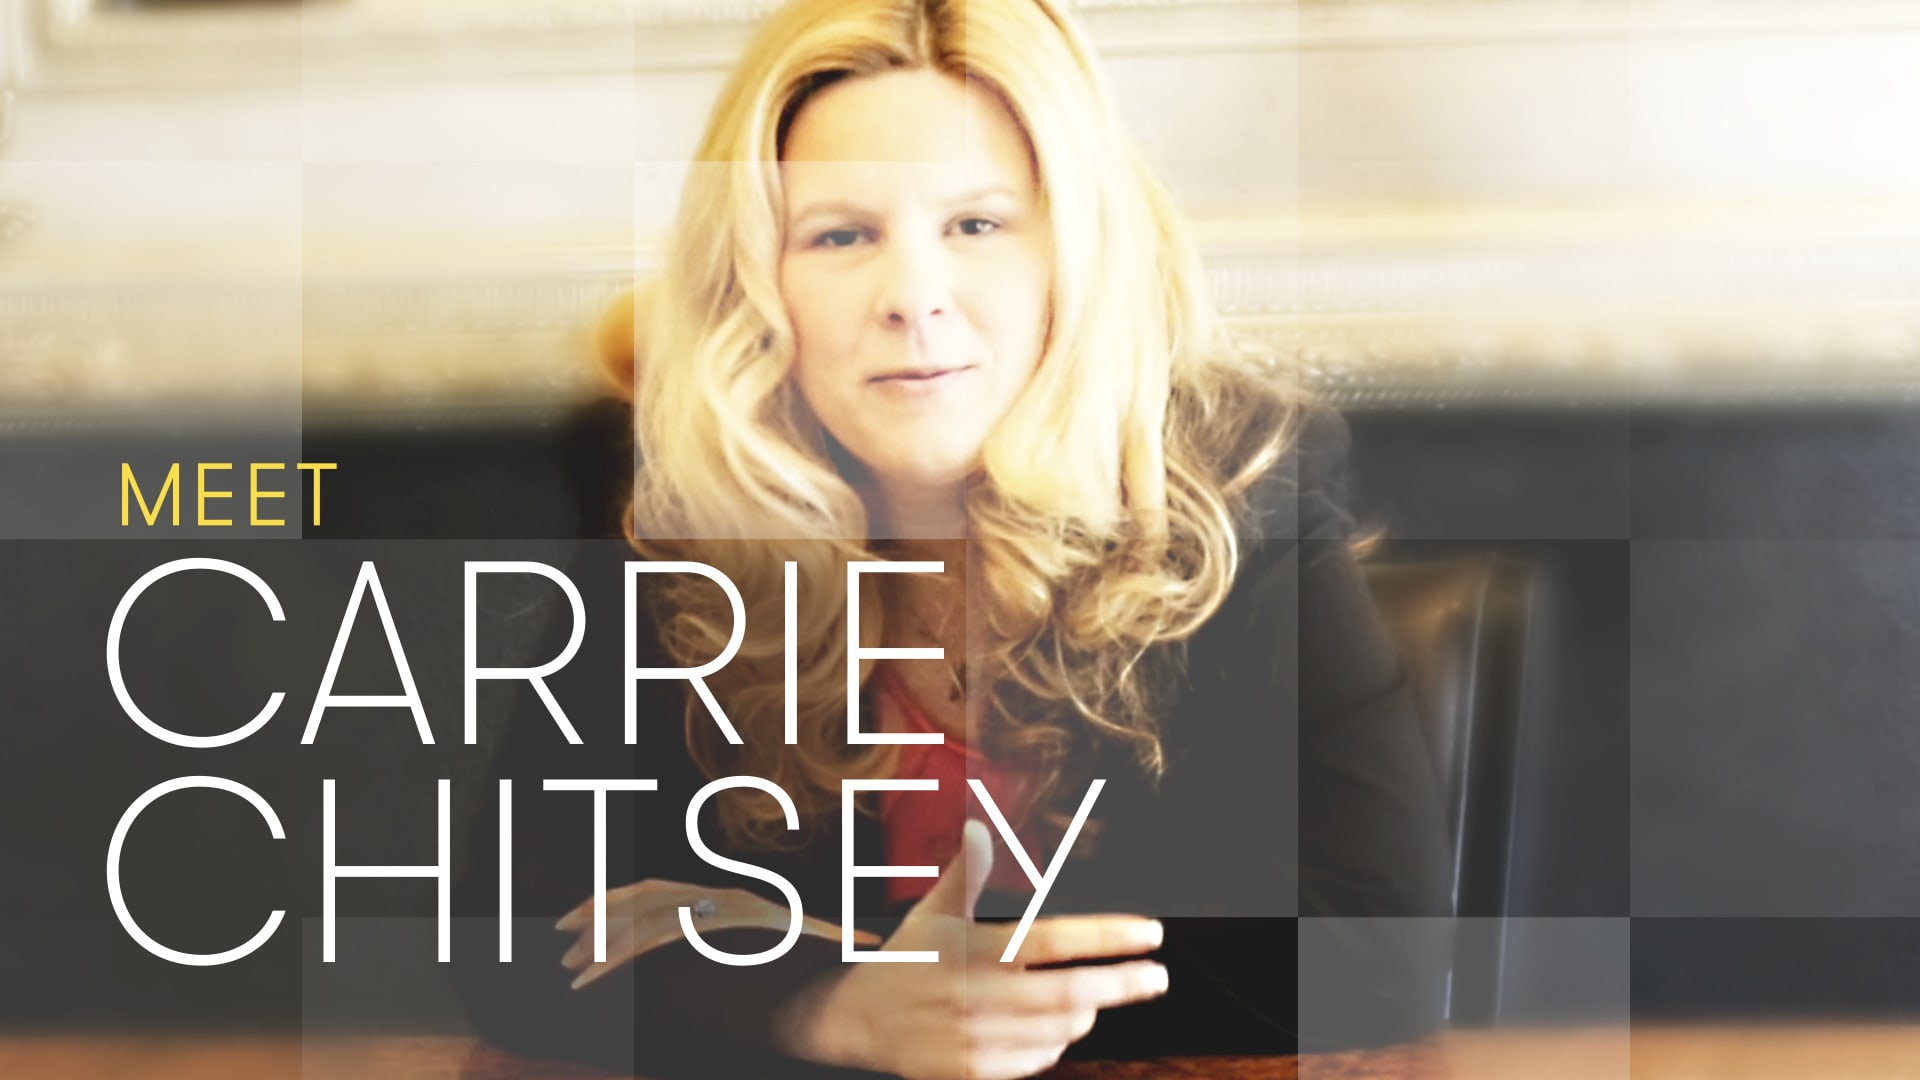 The Partner contestant Carrie Chitsey